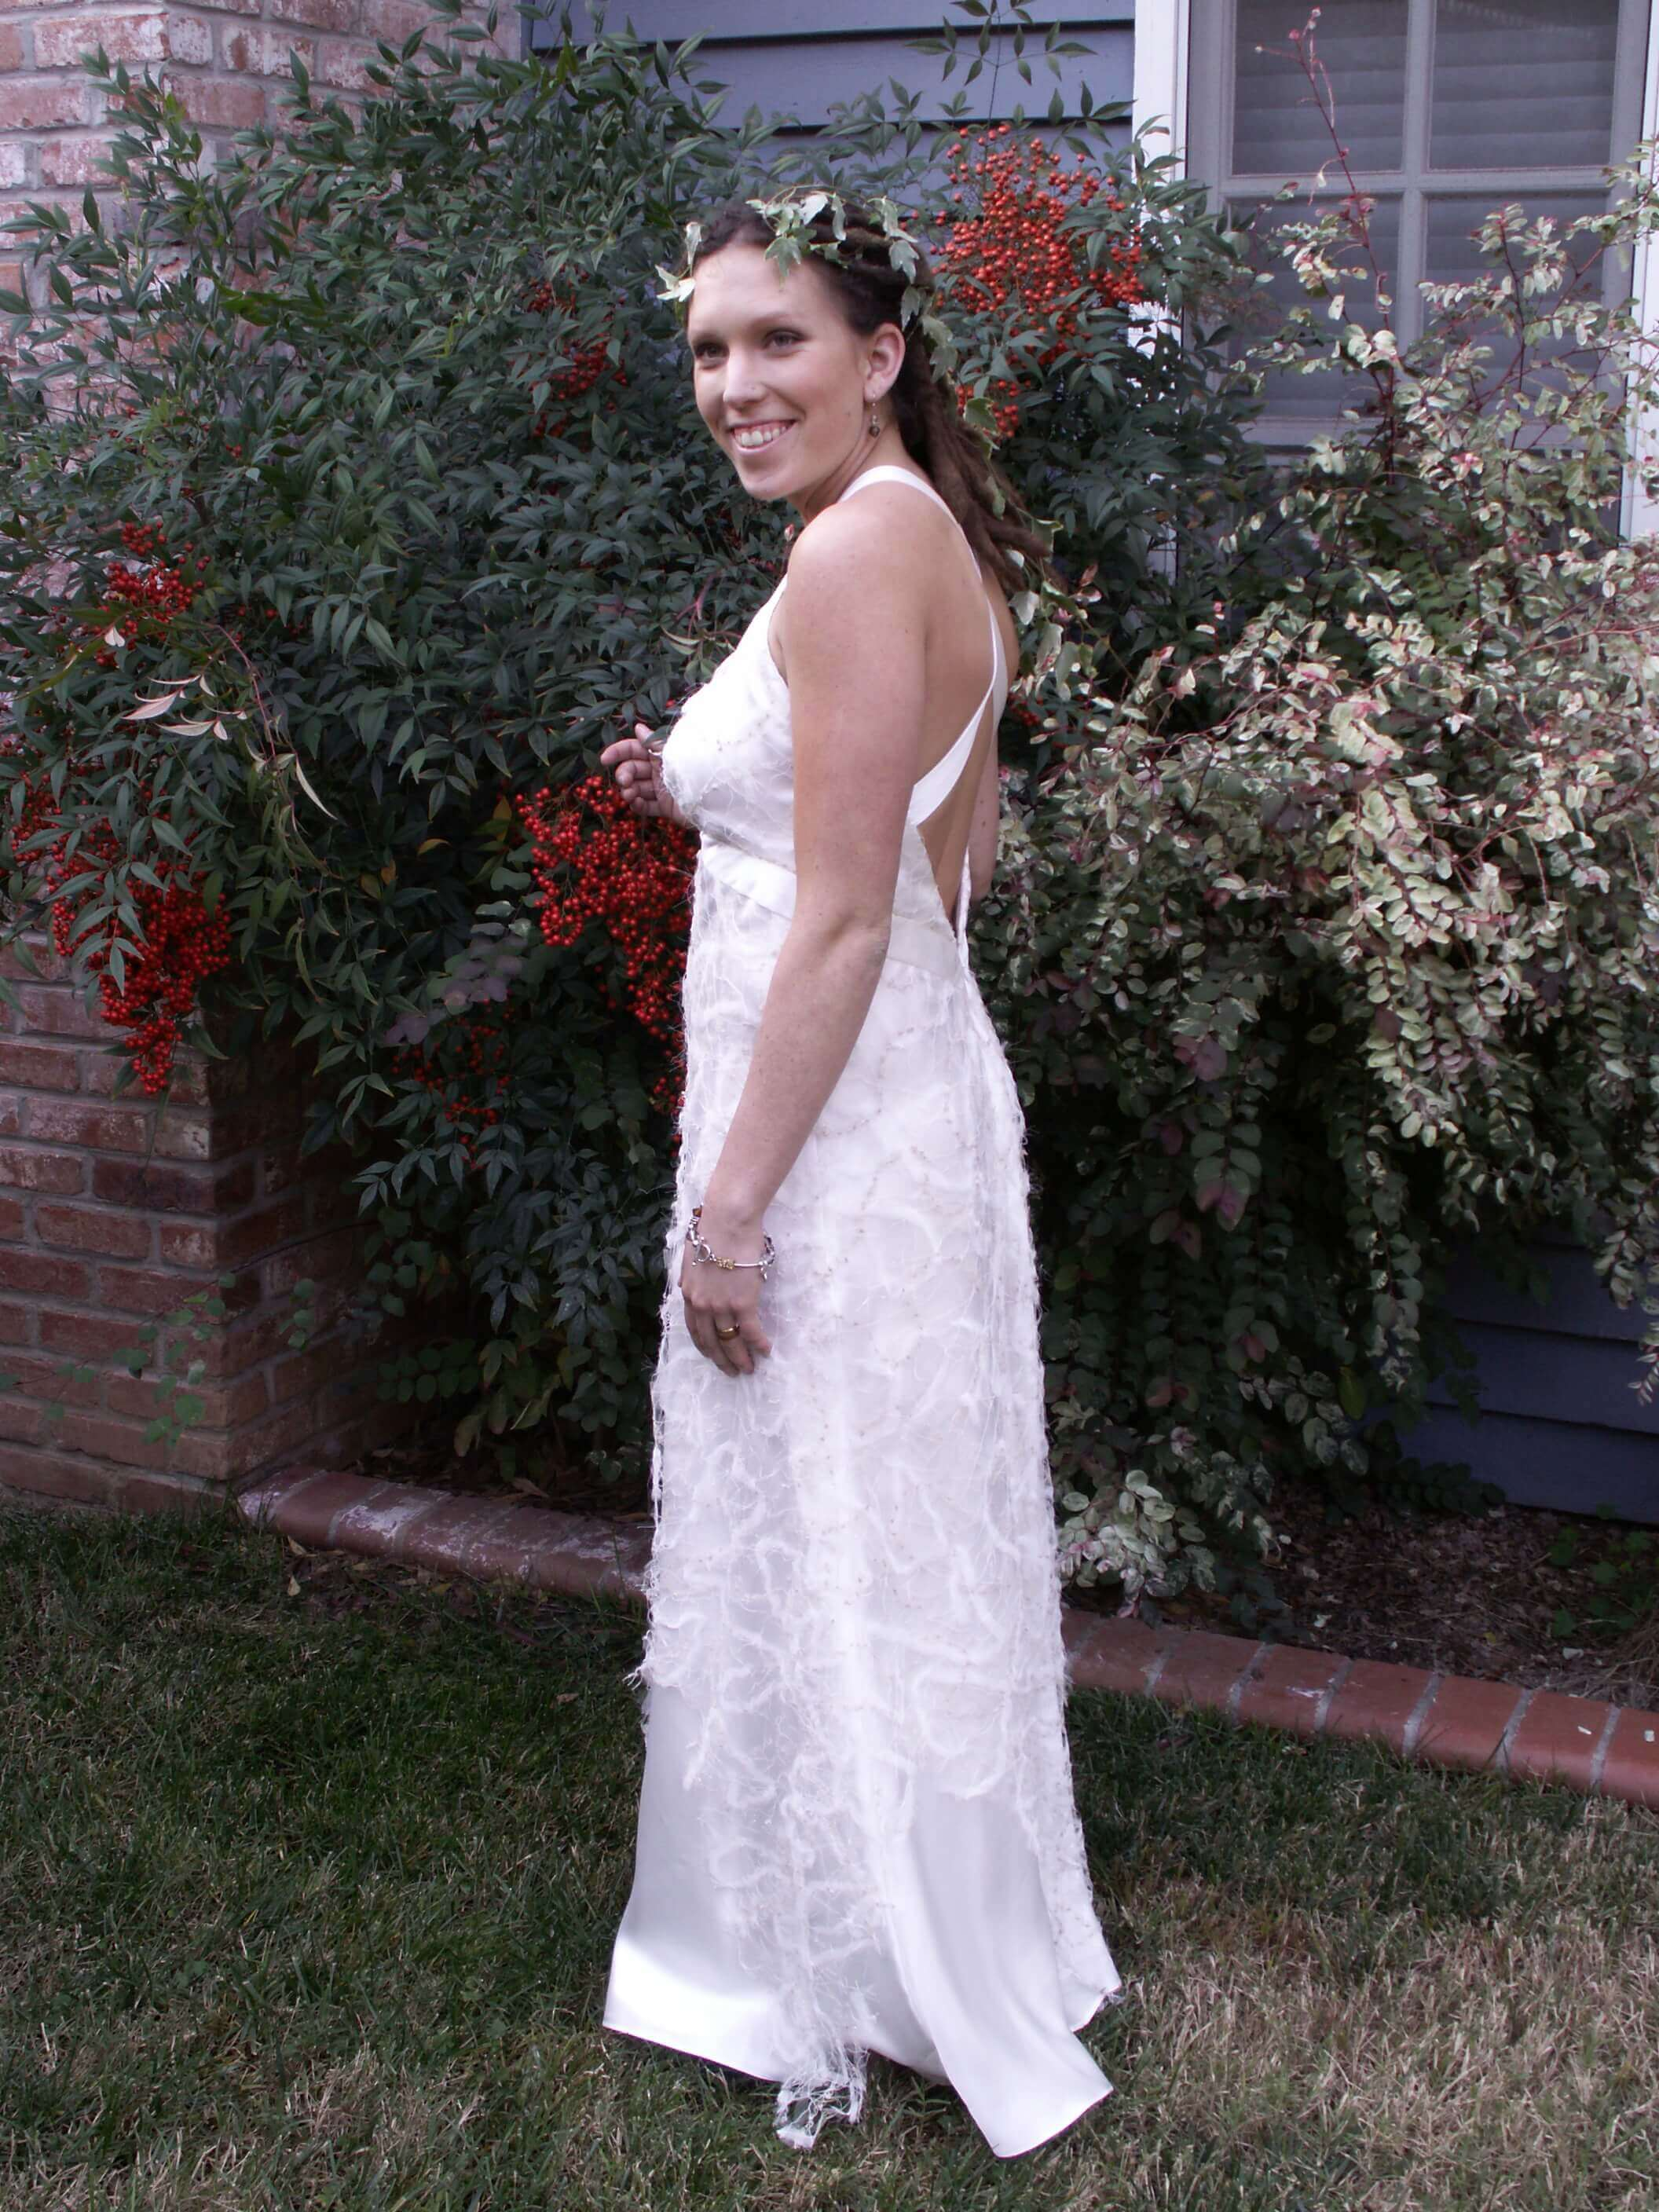 custom wedding dress for Eden by Rebecca Wendlandt